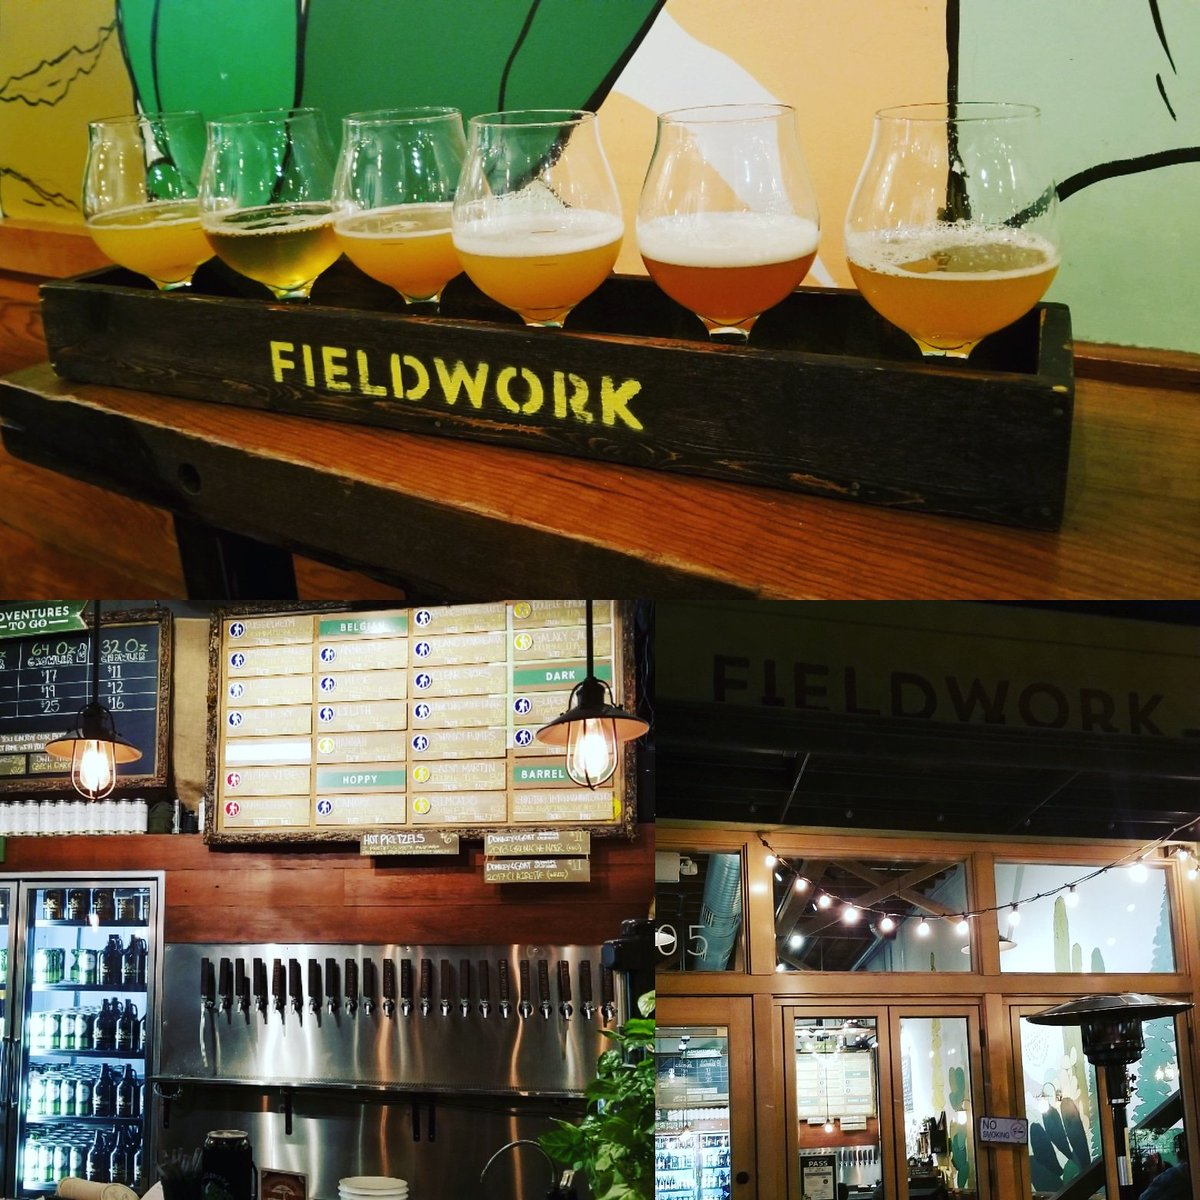 Enjoying amazing brews at this Beervana!@fieldworkbrewing_sacramento #ddh #craftbeer #craft #beer #beerporn #hophead #beers #beeradvocate #hoppythoughts #brewery #brewerypak #craftnotcrap #beergasm #fortheloveofthebeer #beerolympics #drinklocal #sacramento #ca #delicious #cheers